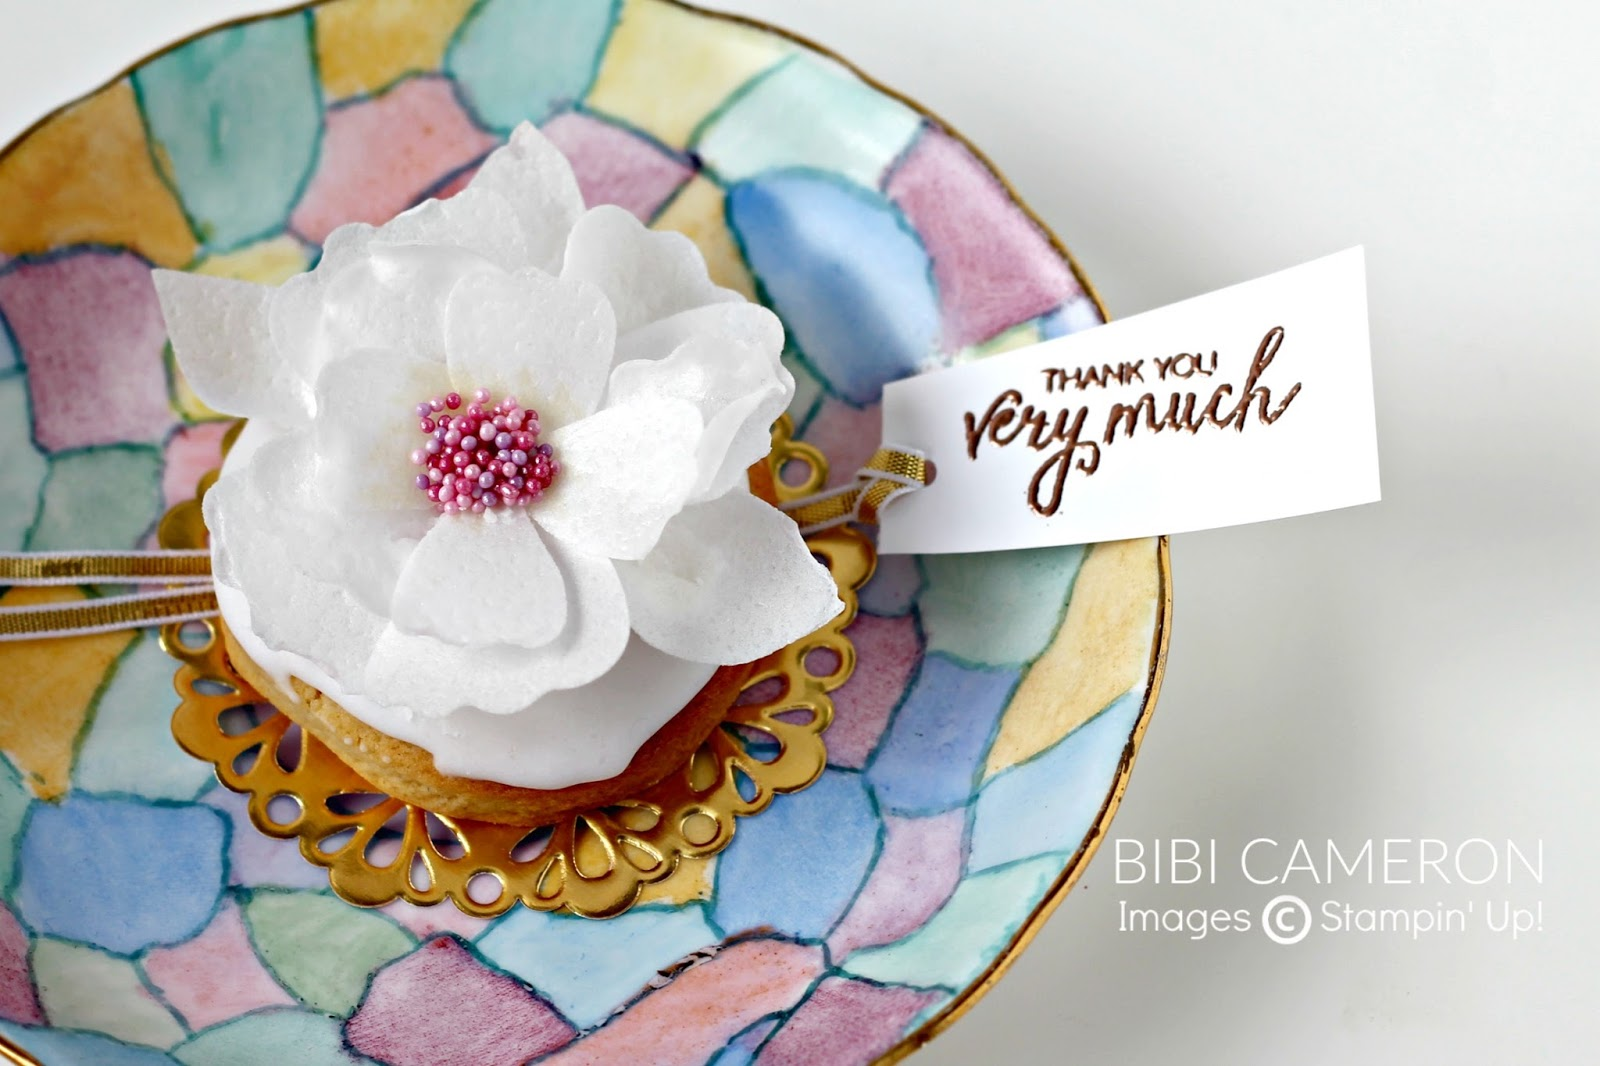 Blossom builder punch wafer paper flowers video gdp051 bibi cameron i like to try different things with my stampin up supplies and for the challenge this week on global design project i made wafer paper flowers using mightylinksfo